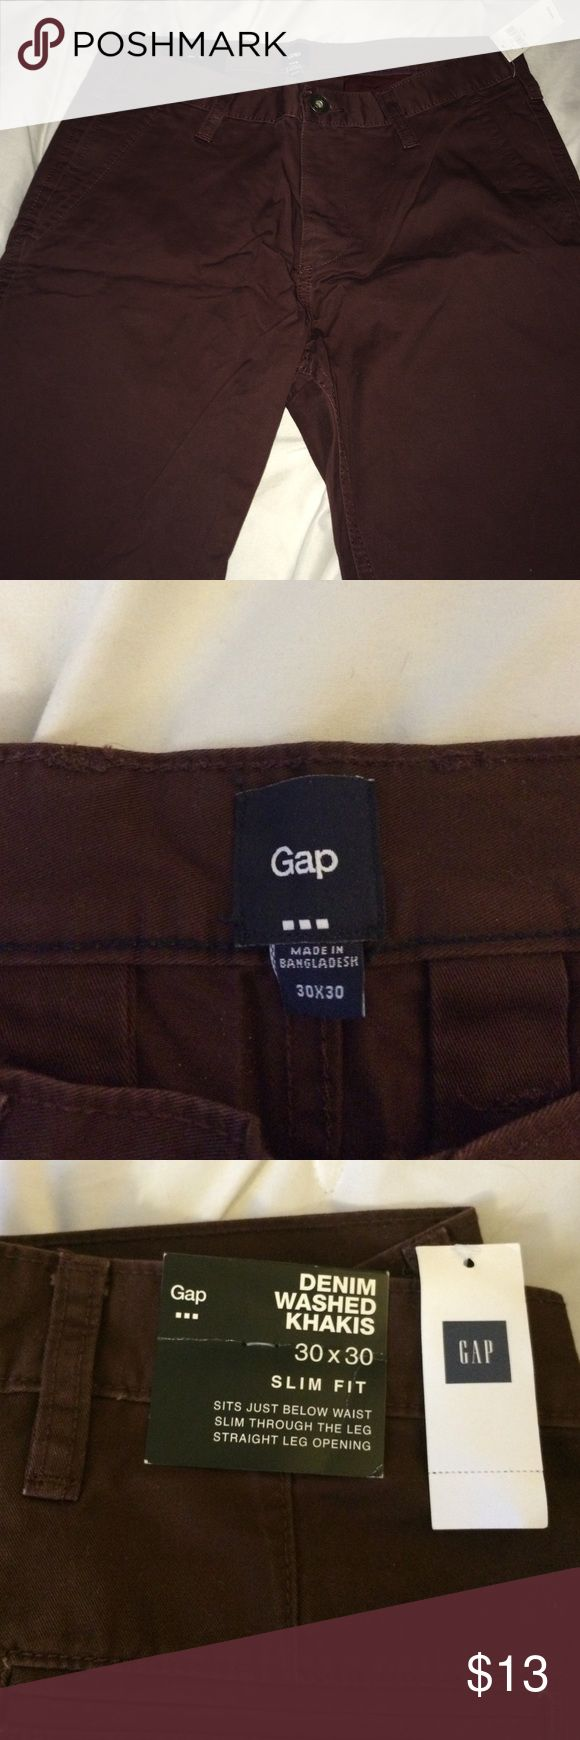 Gap slim fit khakis Denim washed khakis. Brand new, with tags. GAP Pants Chinos & Khakis